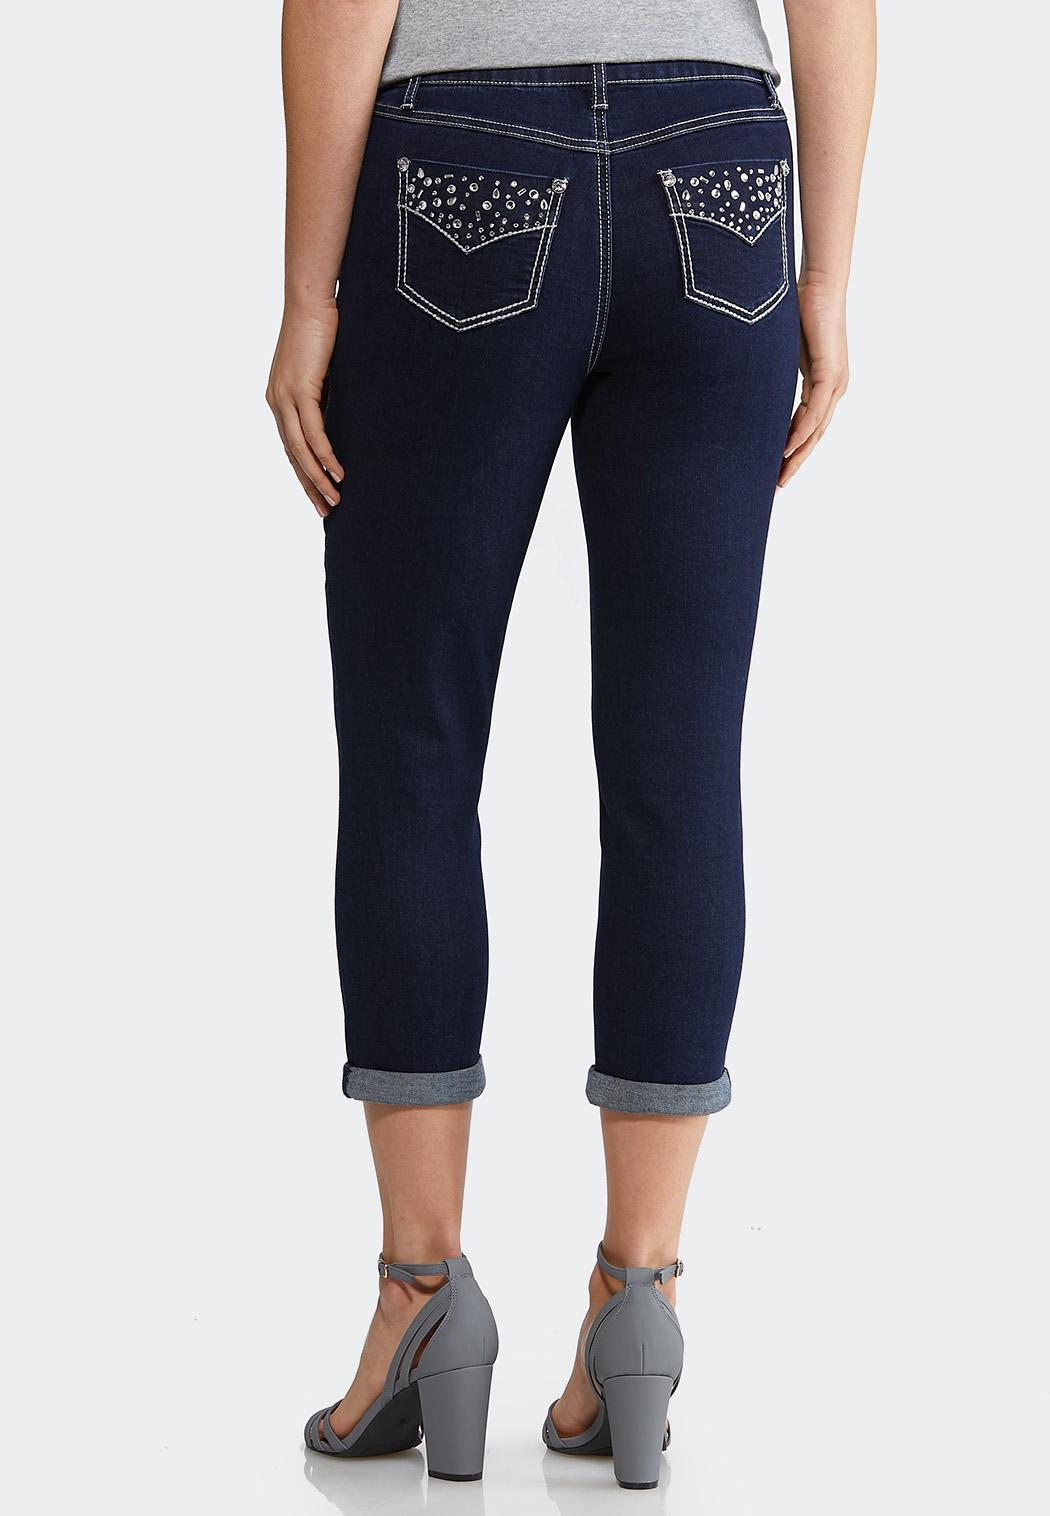 100% genuine 100% satisfaction guarantee classic fit Cropped Crystal Embellished Jeans Cropped Pants Cato Fashions